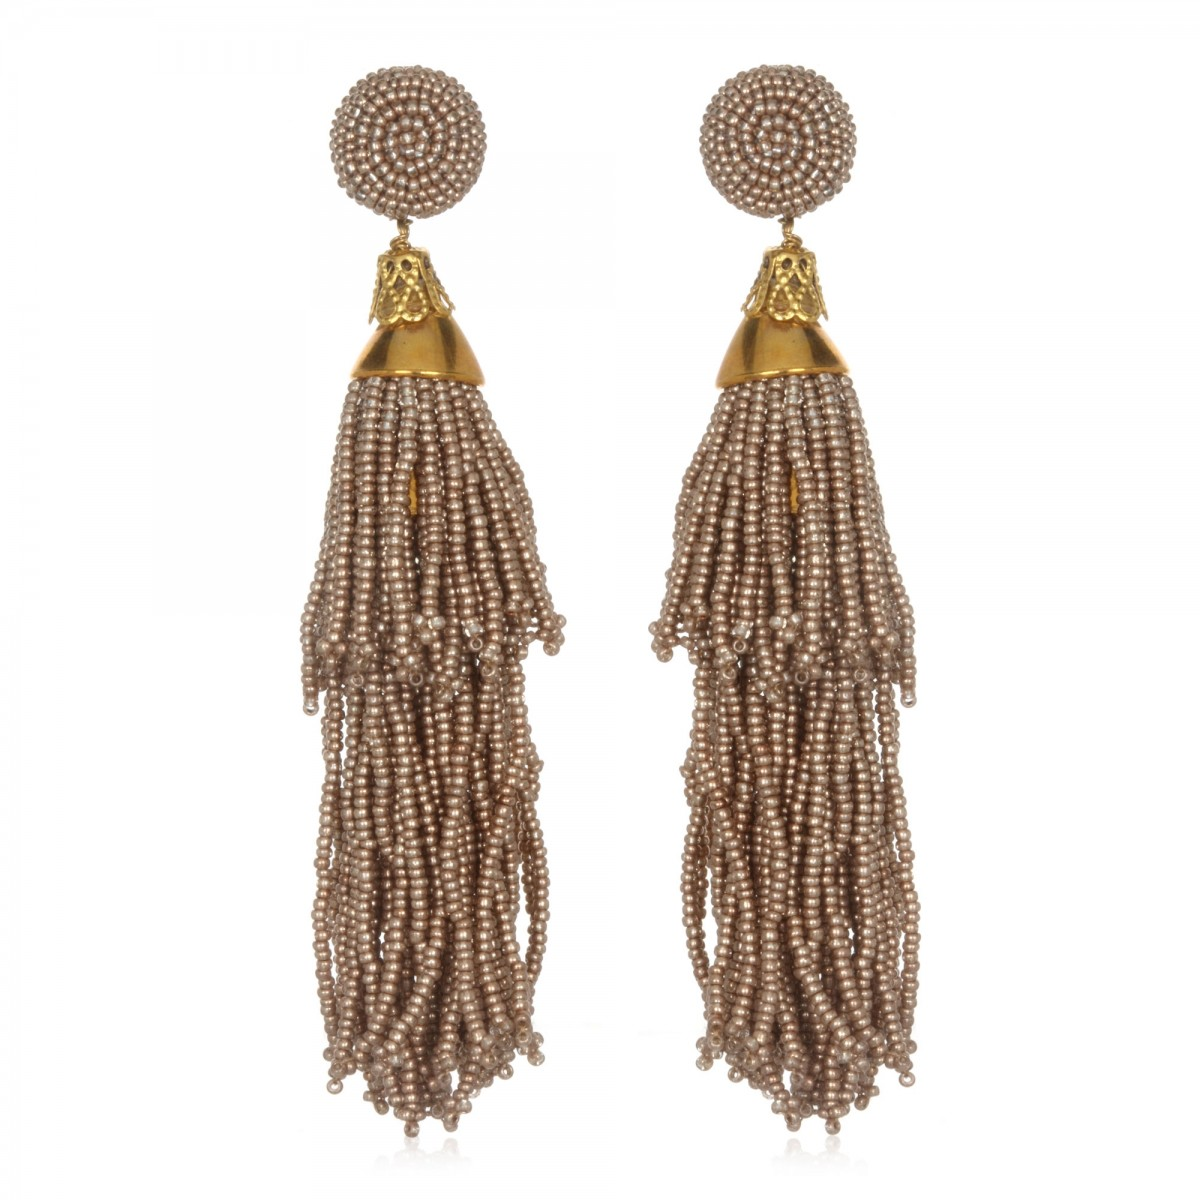 Beaded Double Tassel Earrings by SUZANNA DAI